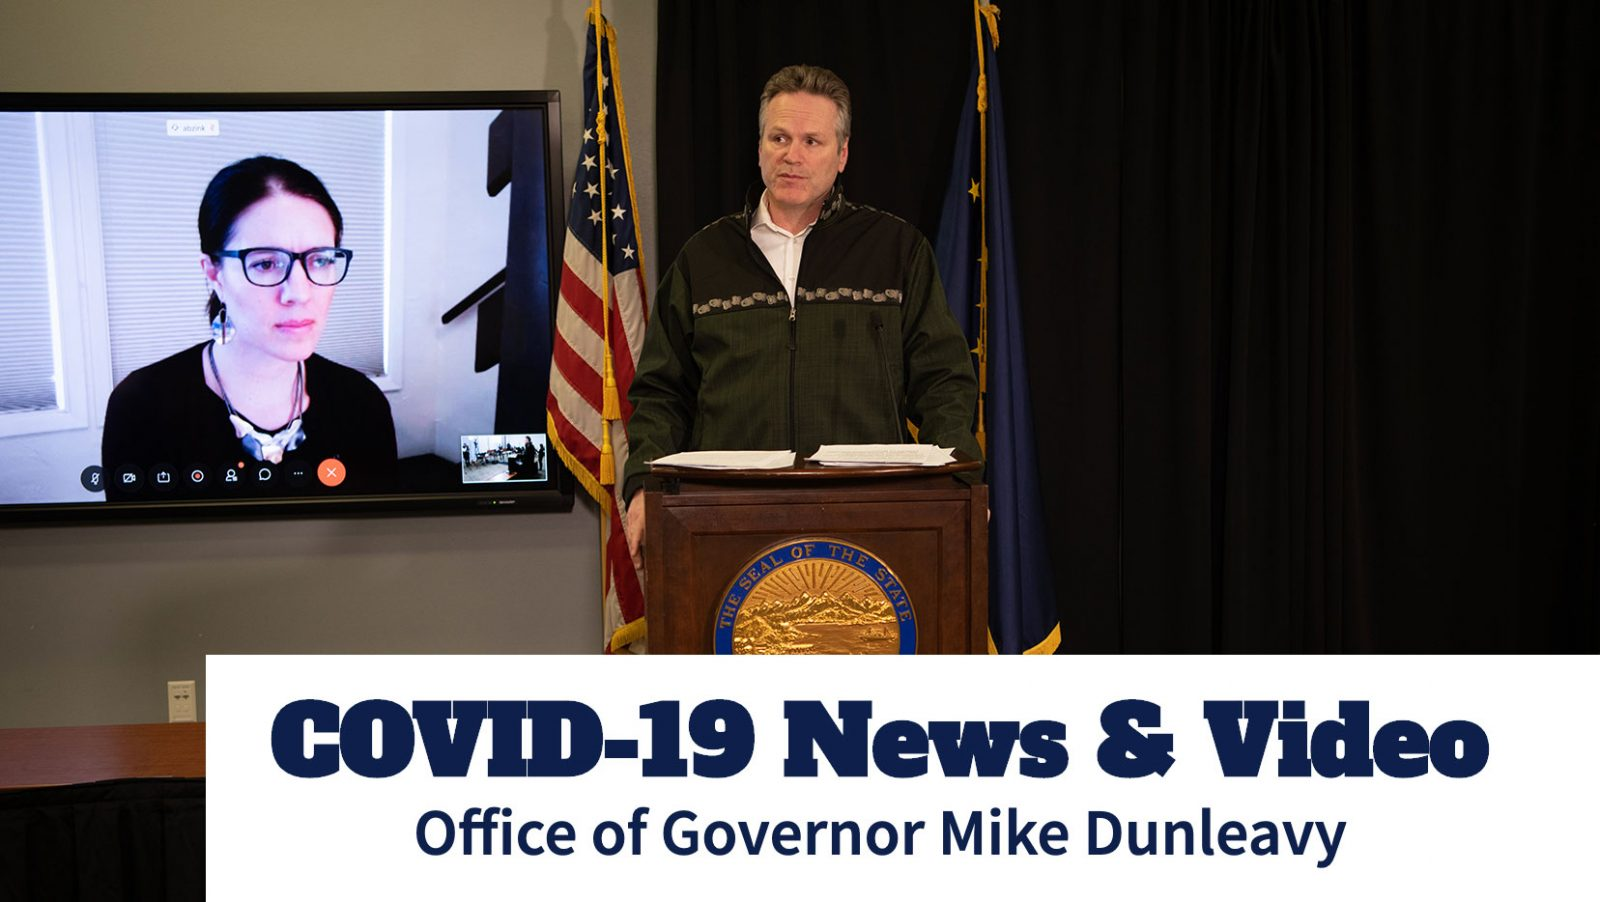 COVID-19 Press Briefing: Governor Mike Dunleavy